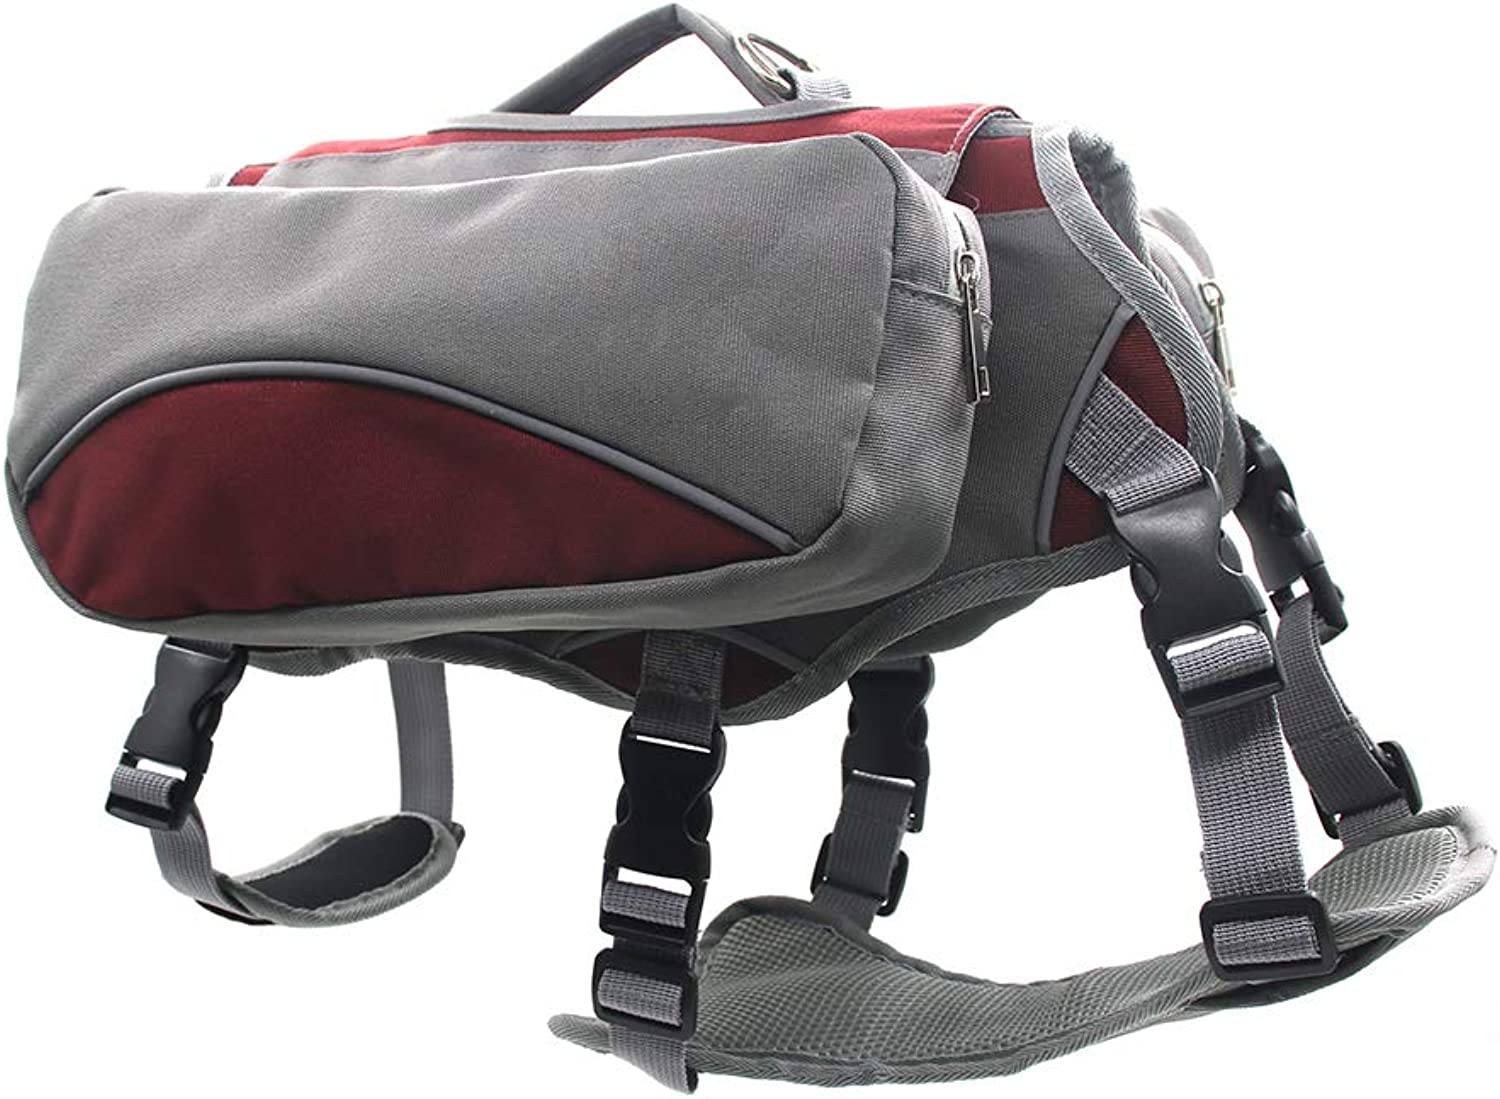 Breathable Pet Travel Backpack,Dog Saddle Bag Harness Can be Disassembled Different Way of Using Breathable mesh Reflective Strip Design Used for pet